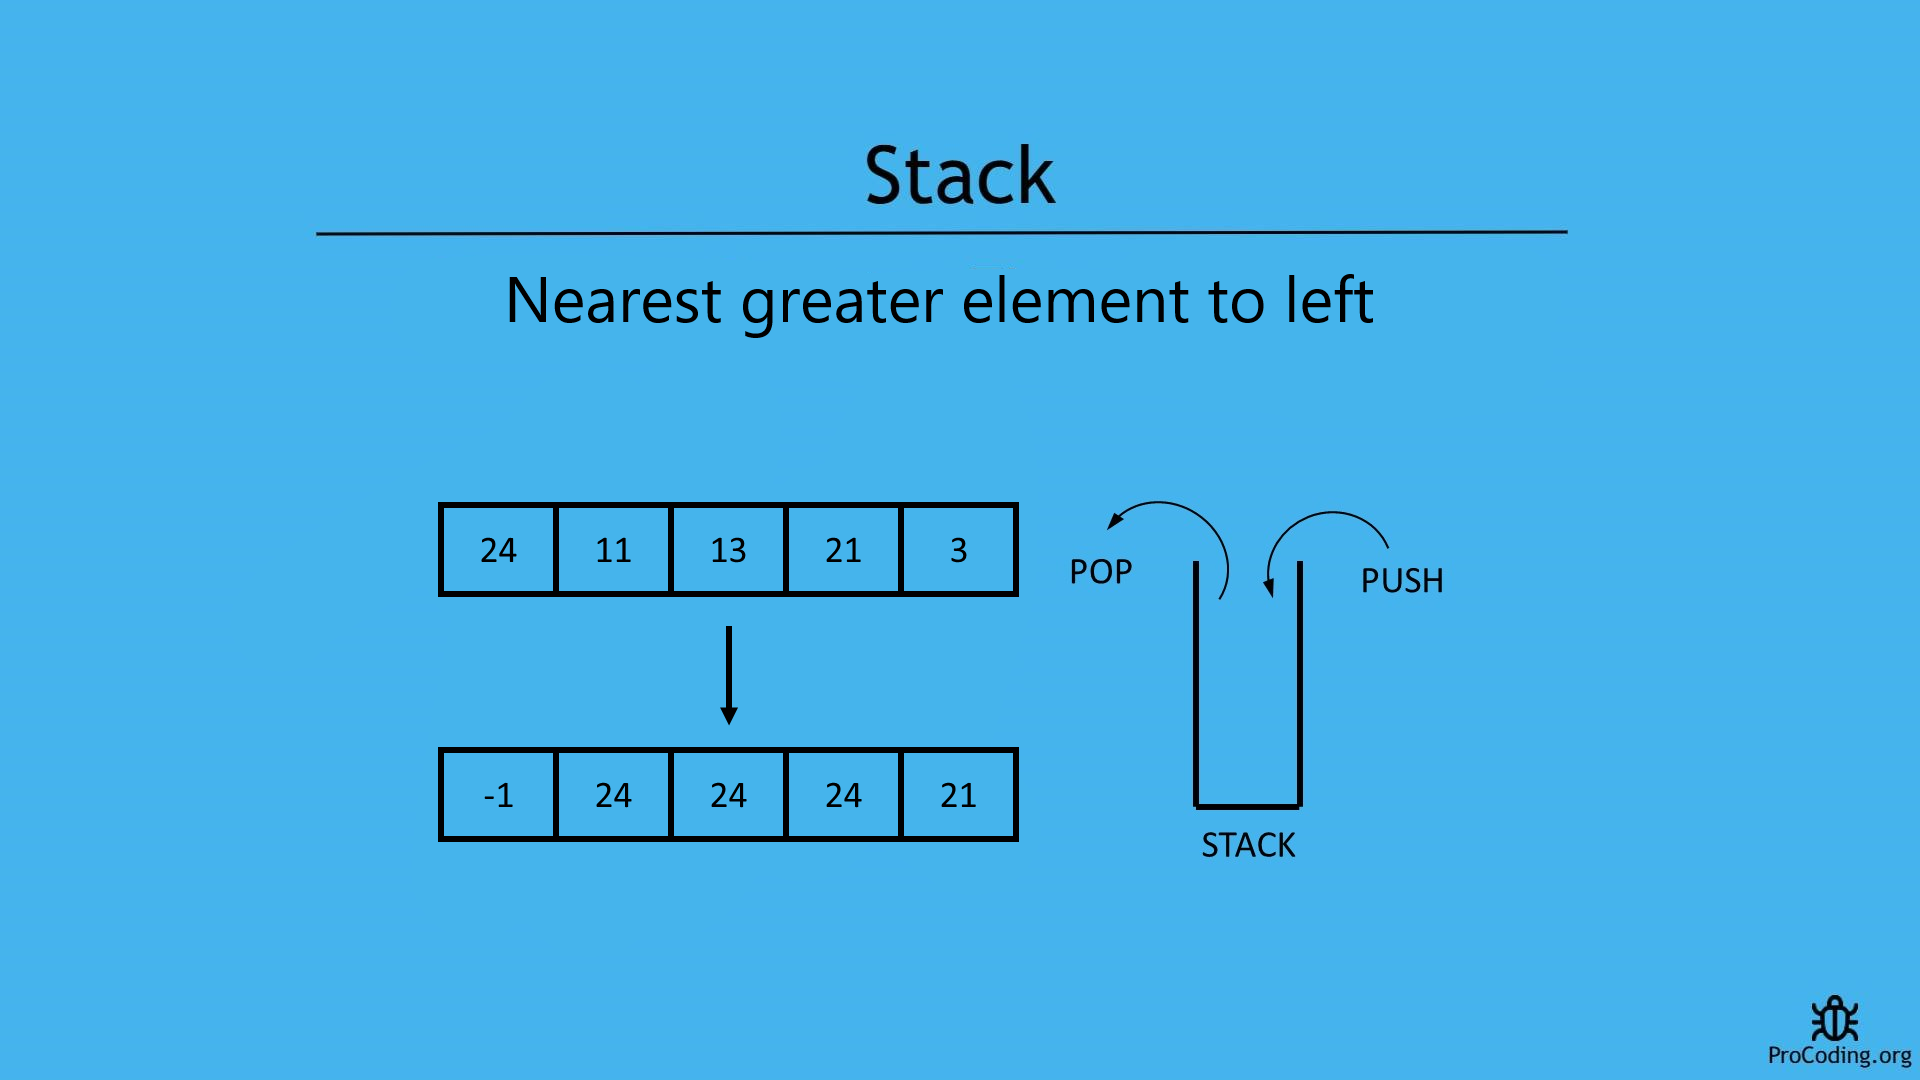 Nearest greatest element to left in stack